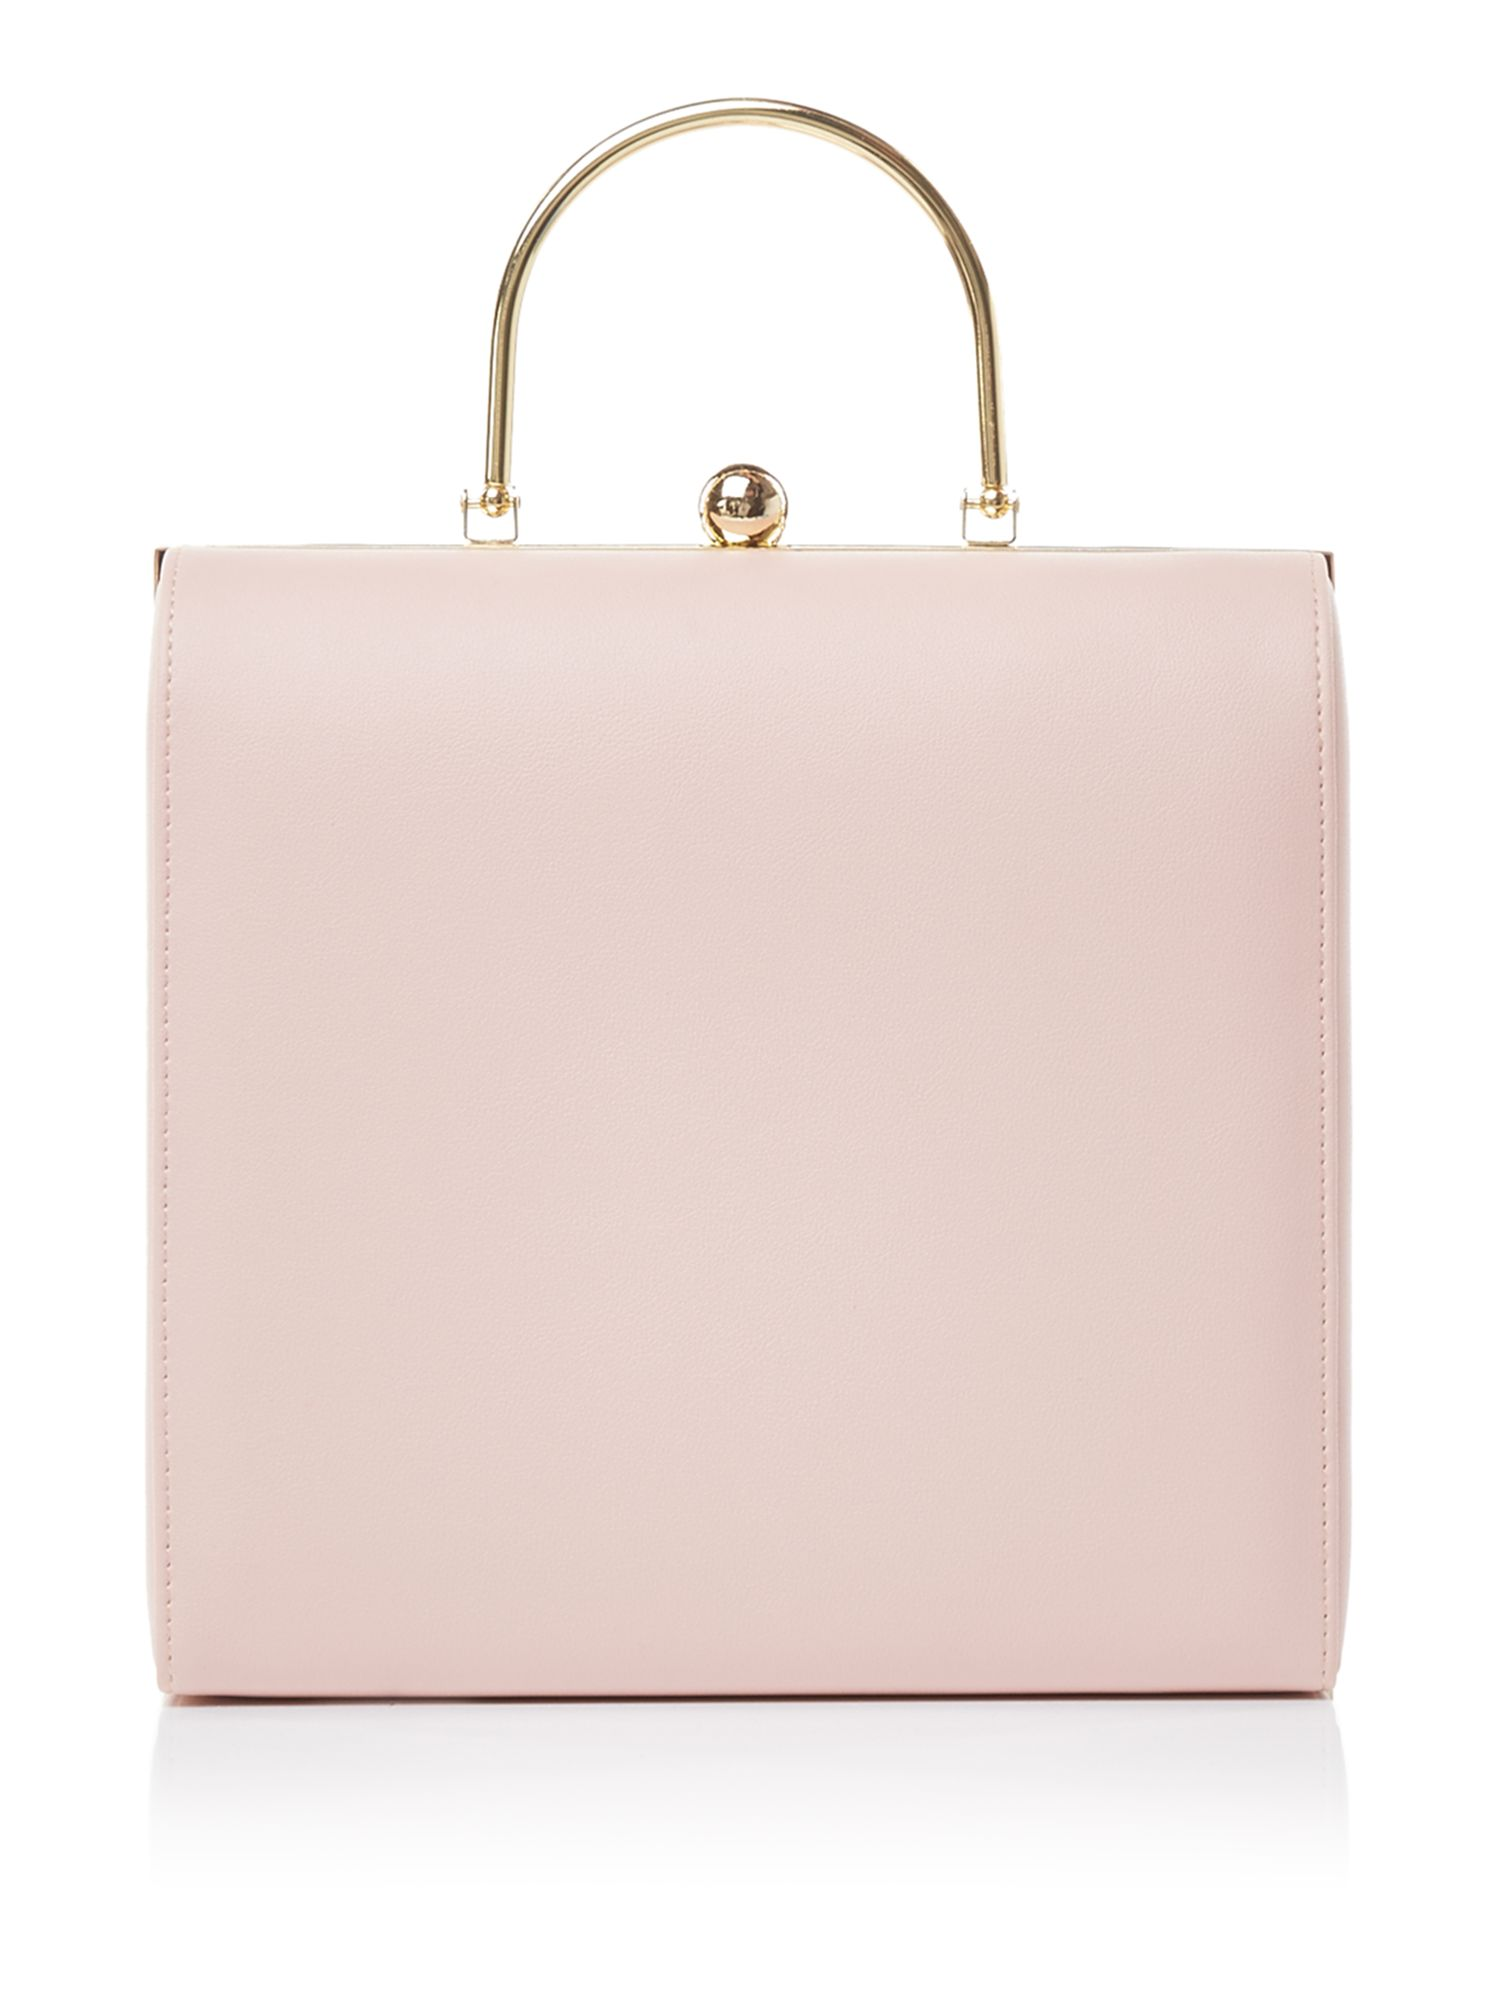 Therapy Fiona Frame Bag, Nude